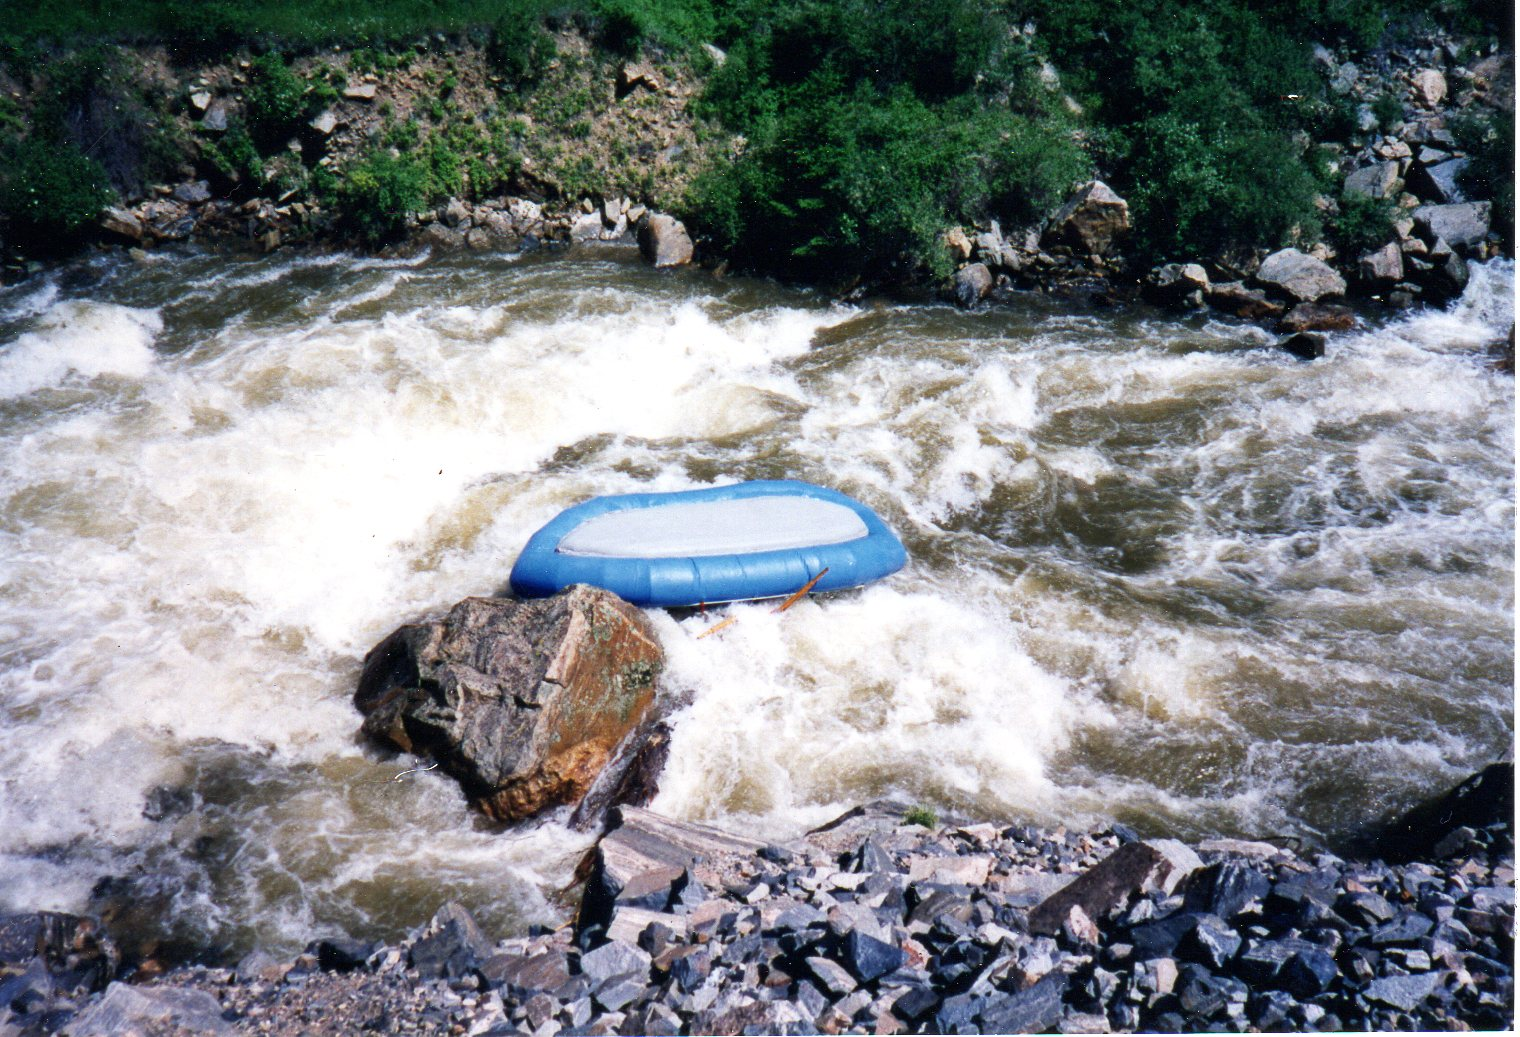 Click image for larger version  Name:1996 raft002.jpg Views:477 Size:409.2 KB ID:11961